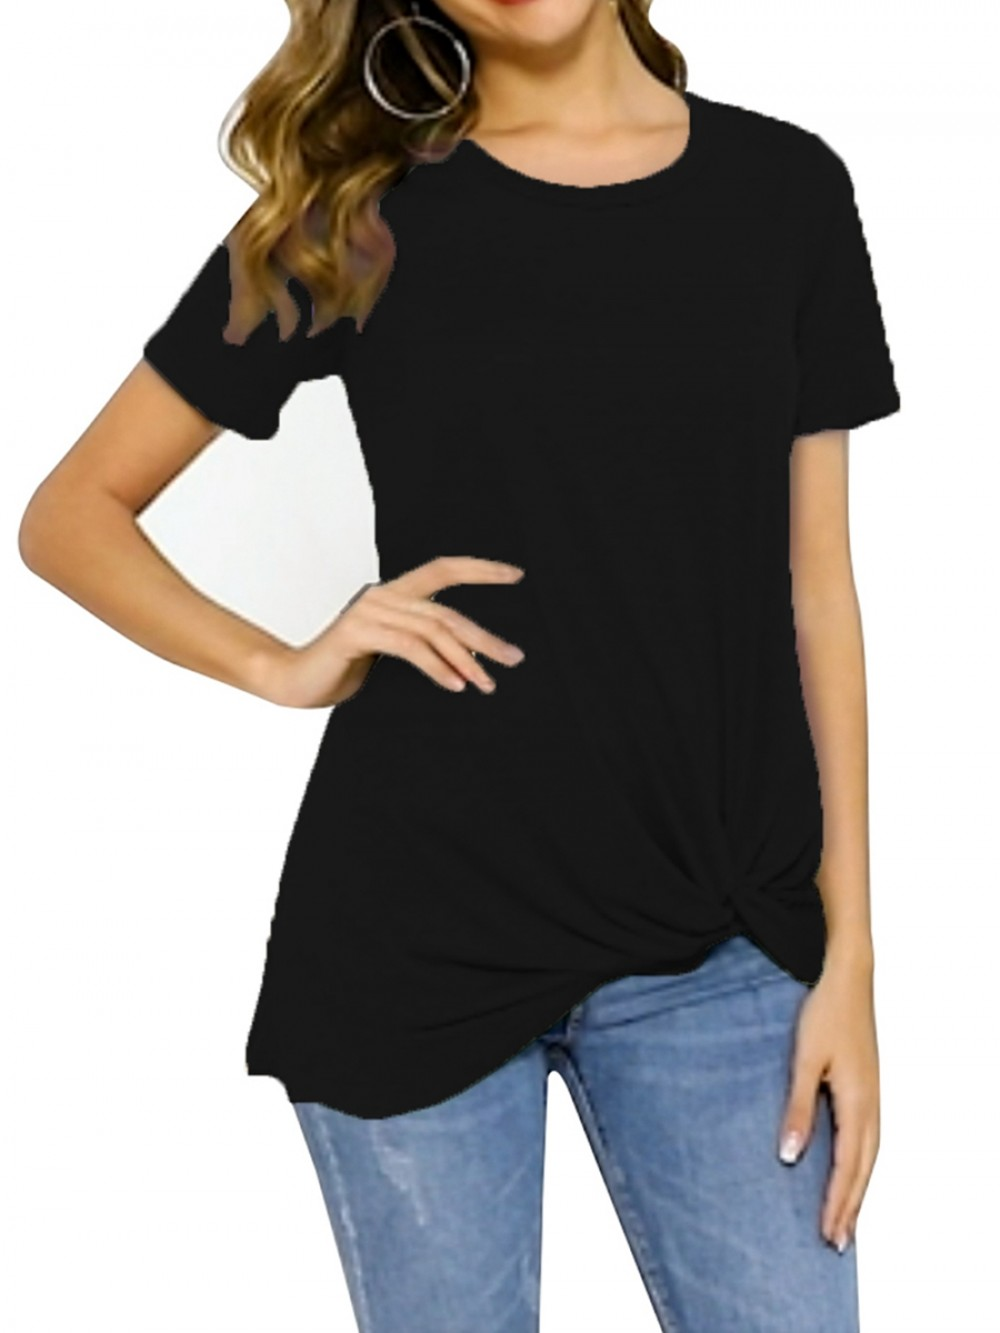 Black Round Collar Short Sleeves Knotted Shirt Soft-Touch